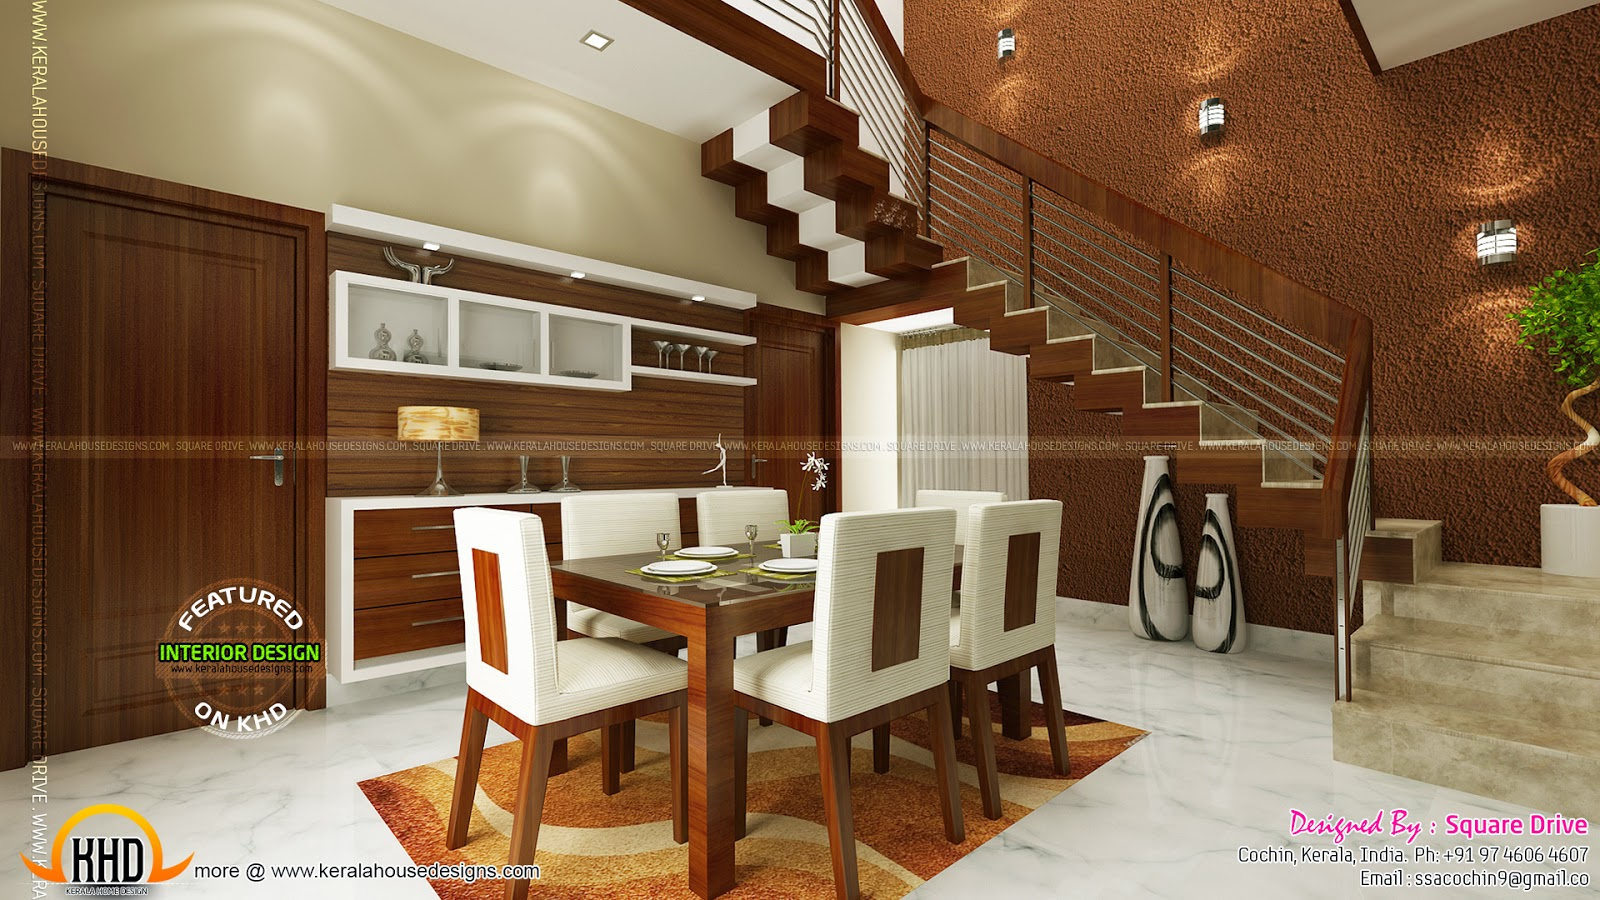 Cochin interior design kerala home design and floor plans for Kerala home interior designs photos